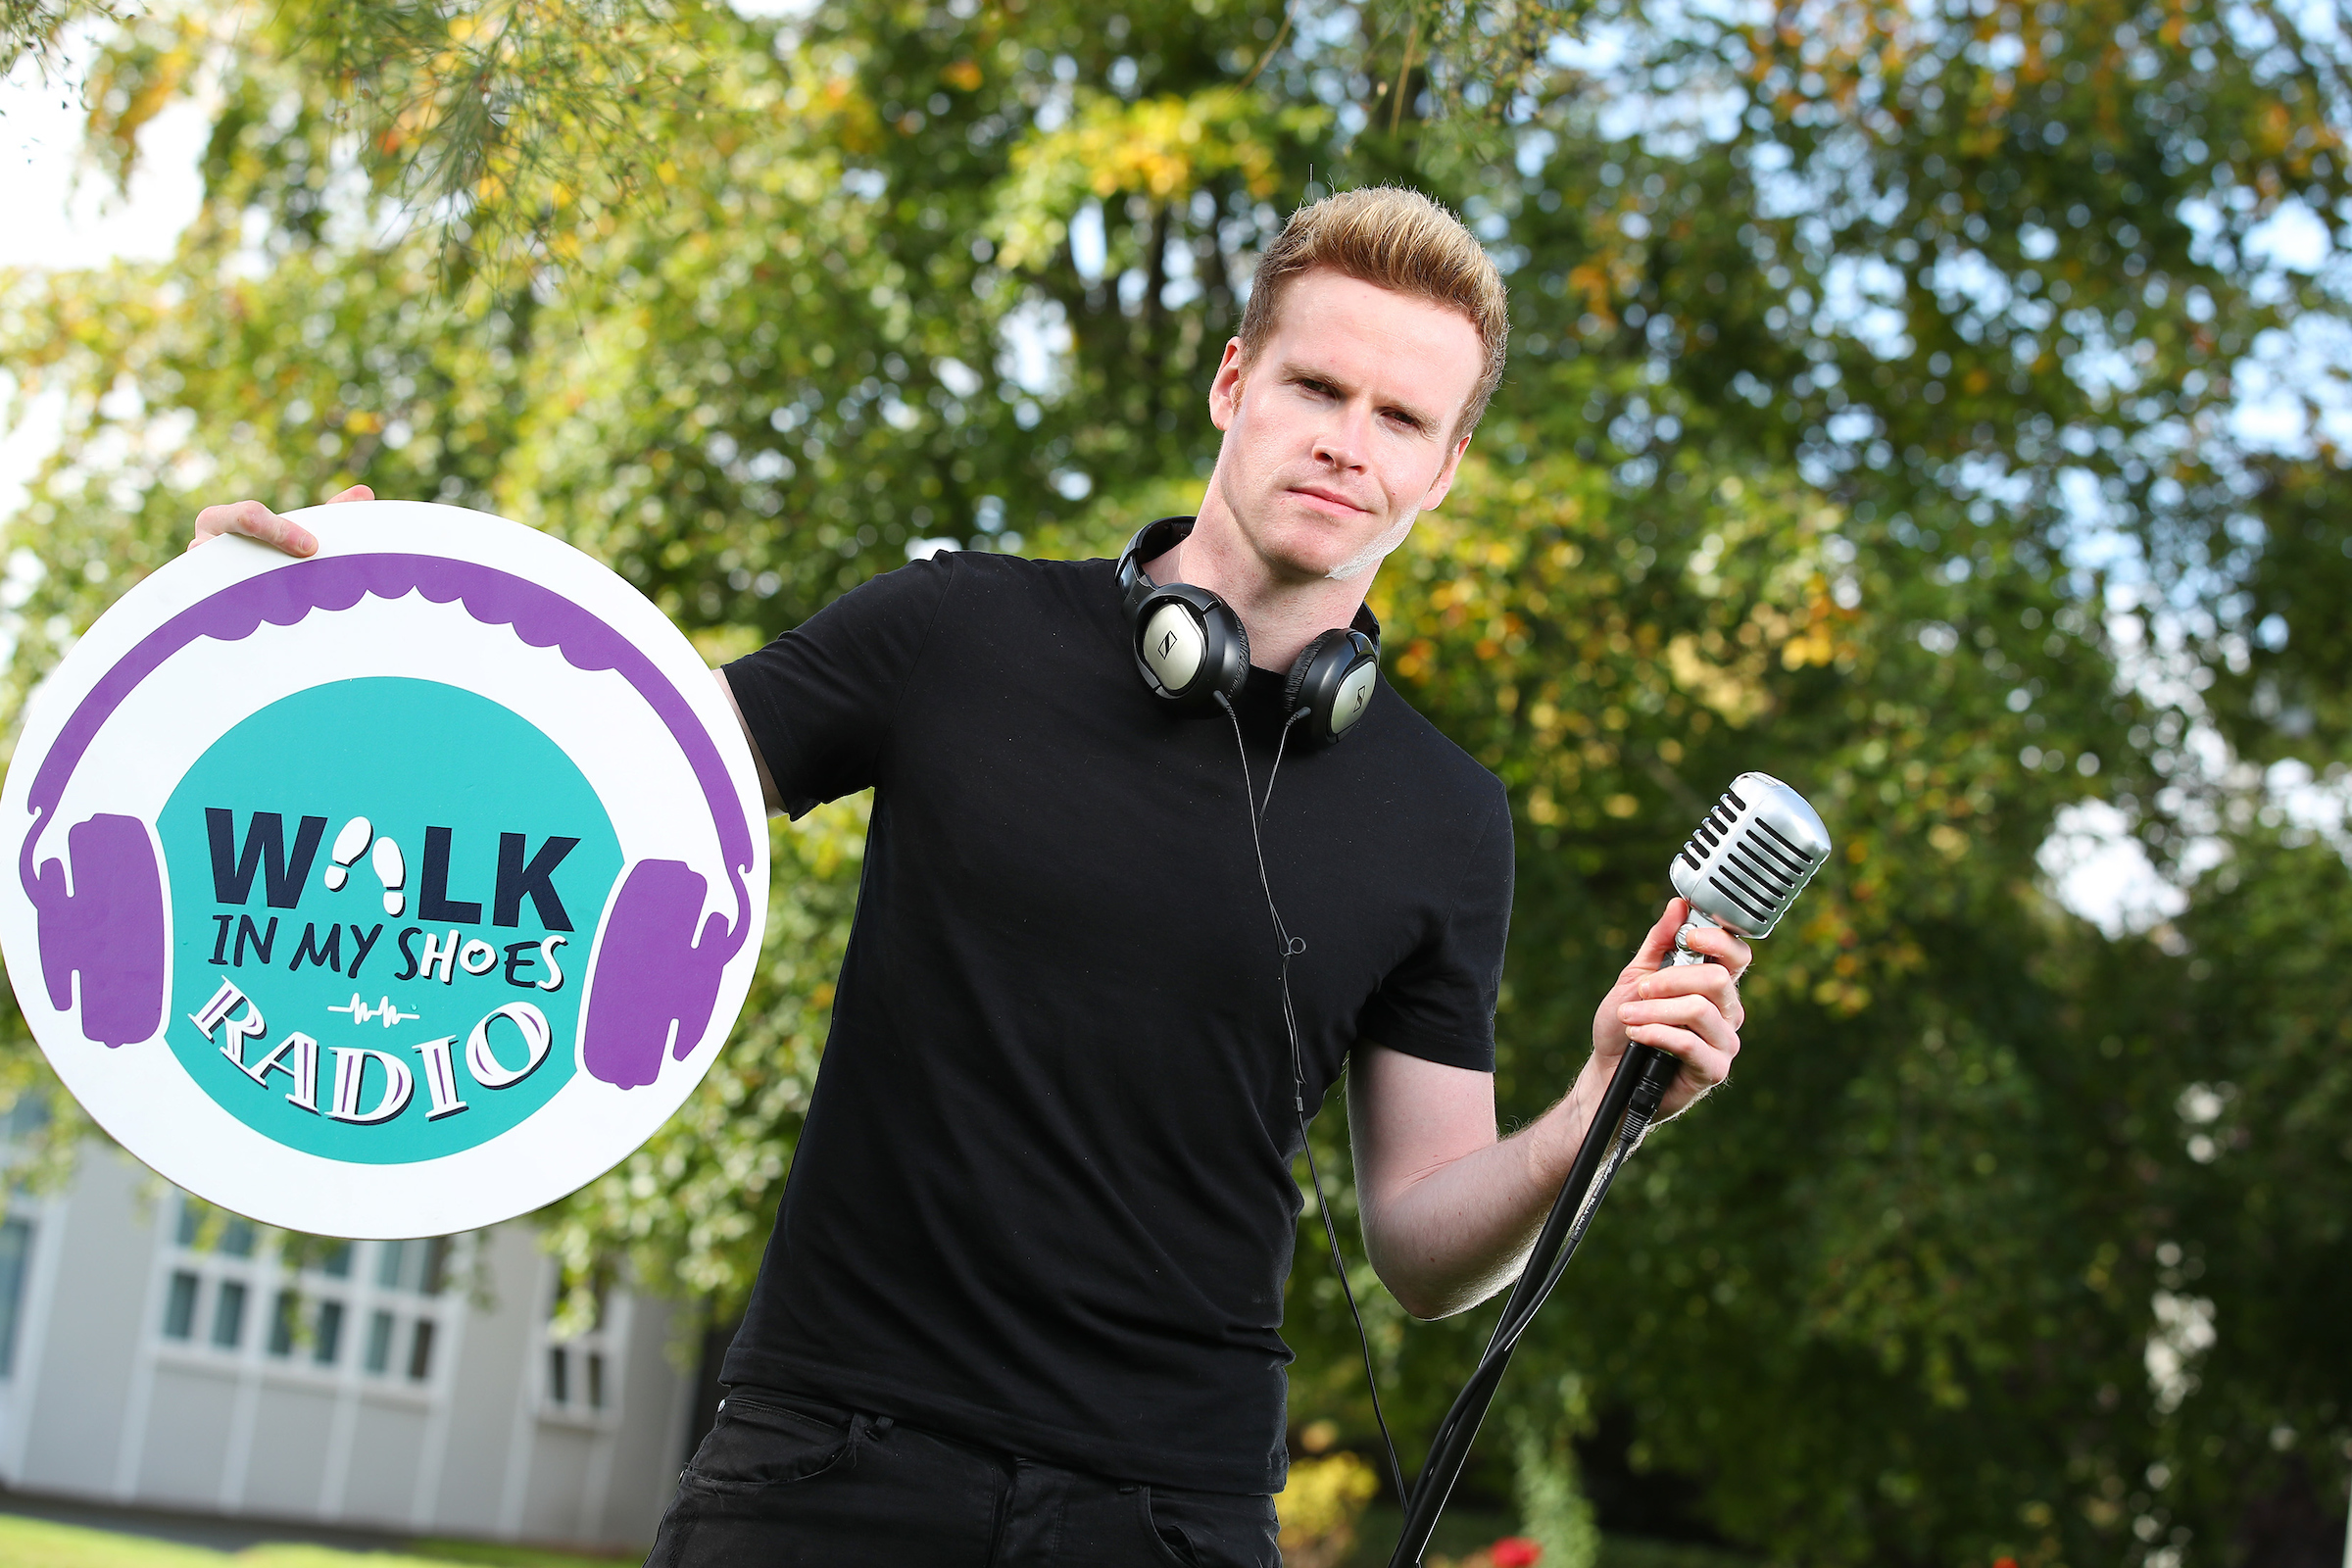 Steve Garaghan from the band Kodaline is the ambassador for the Walk in My Shoes project.